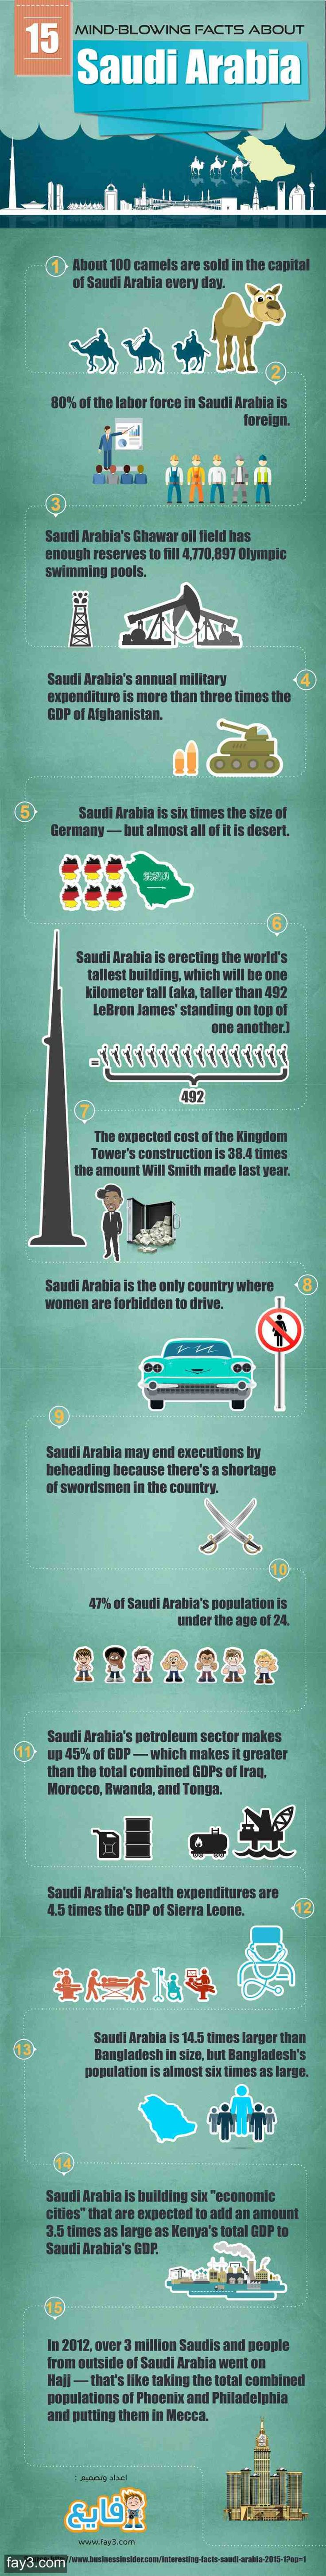 Fifteen Mind-Blowing Facts About Saudi Arabia #KSA #Infographic